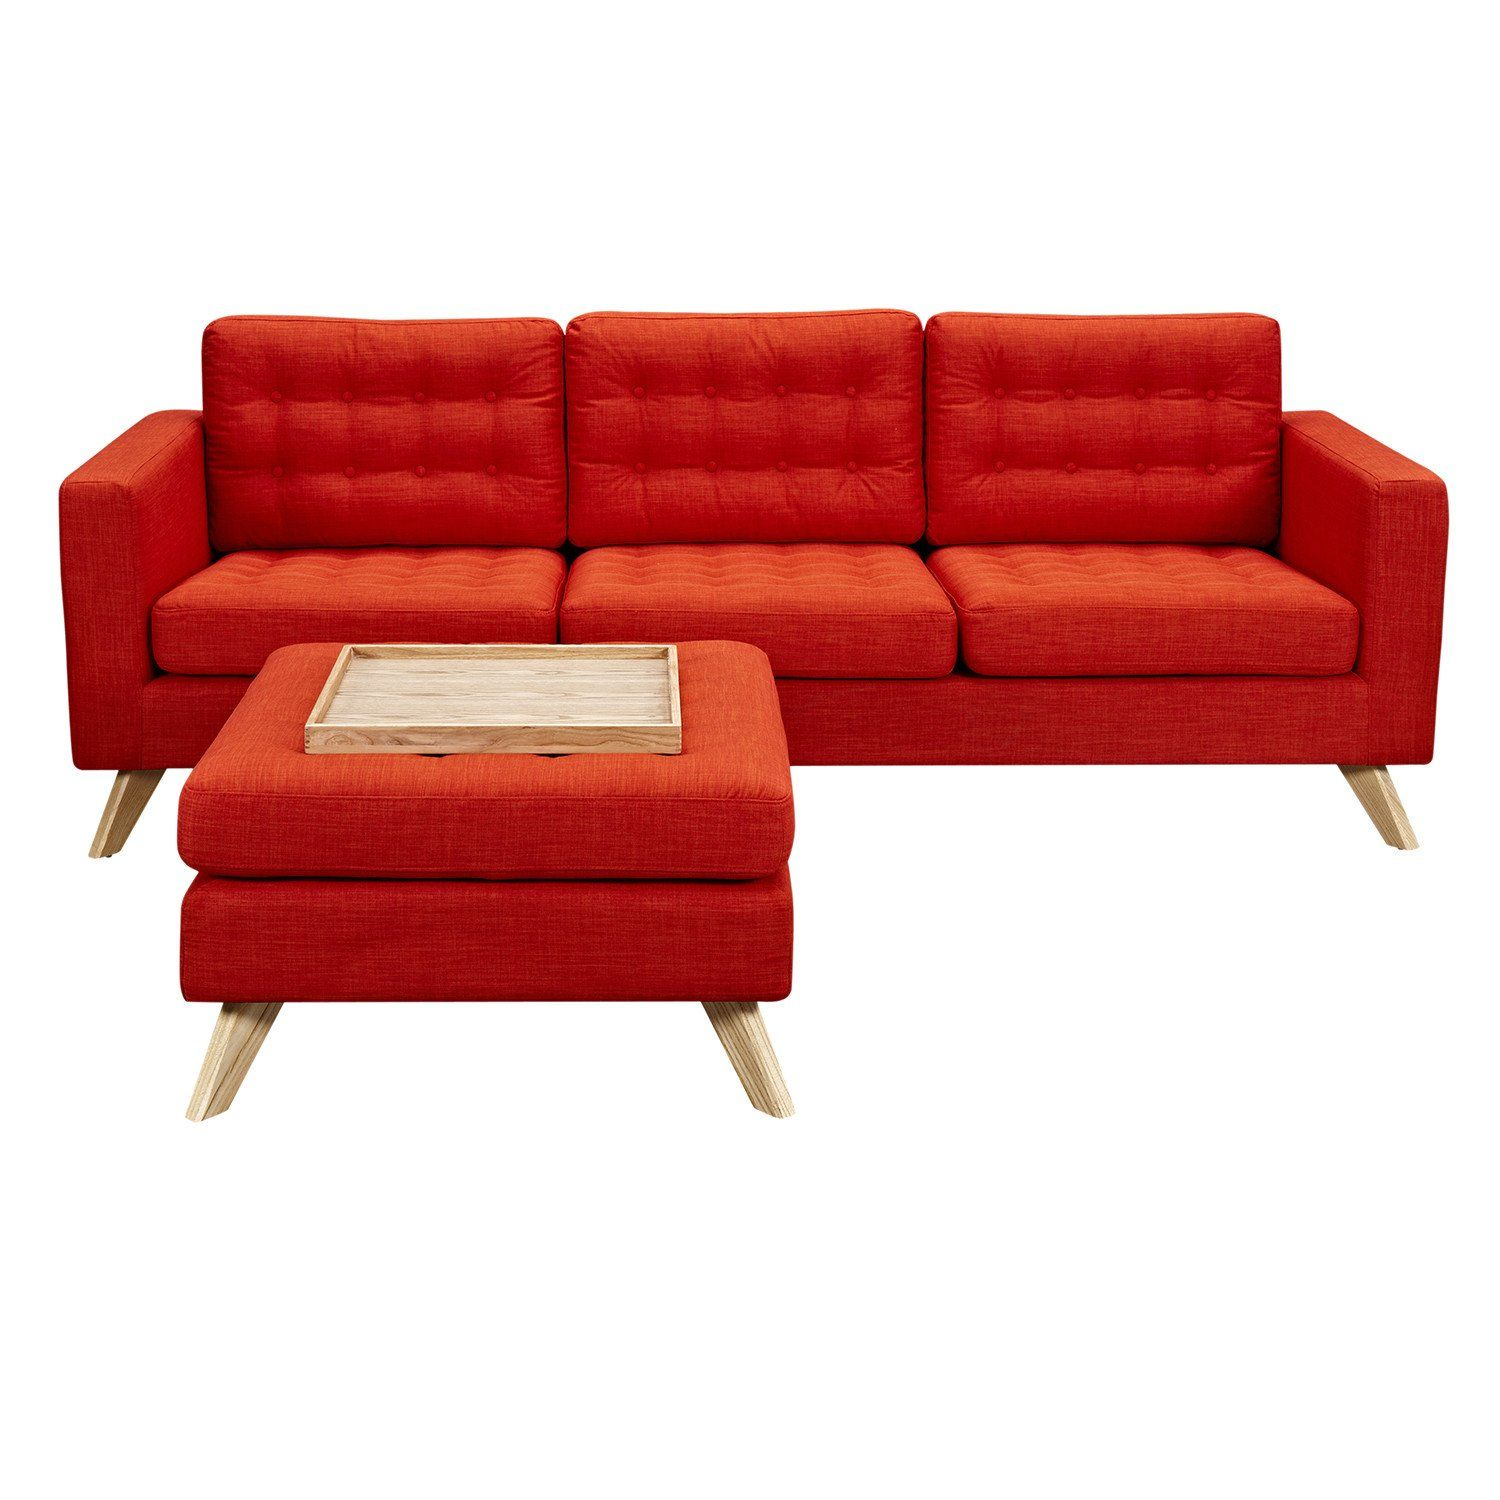 Mina Sofa Retro Orange Set Natural Retro Sofa